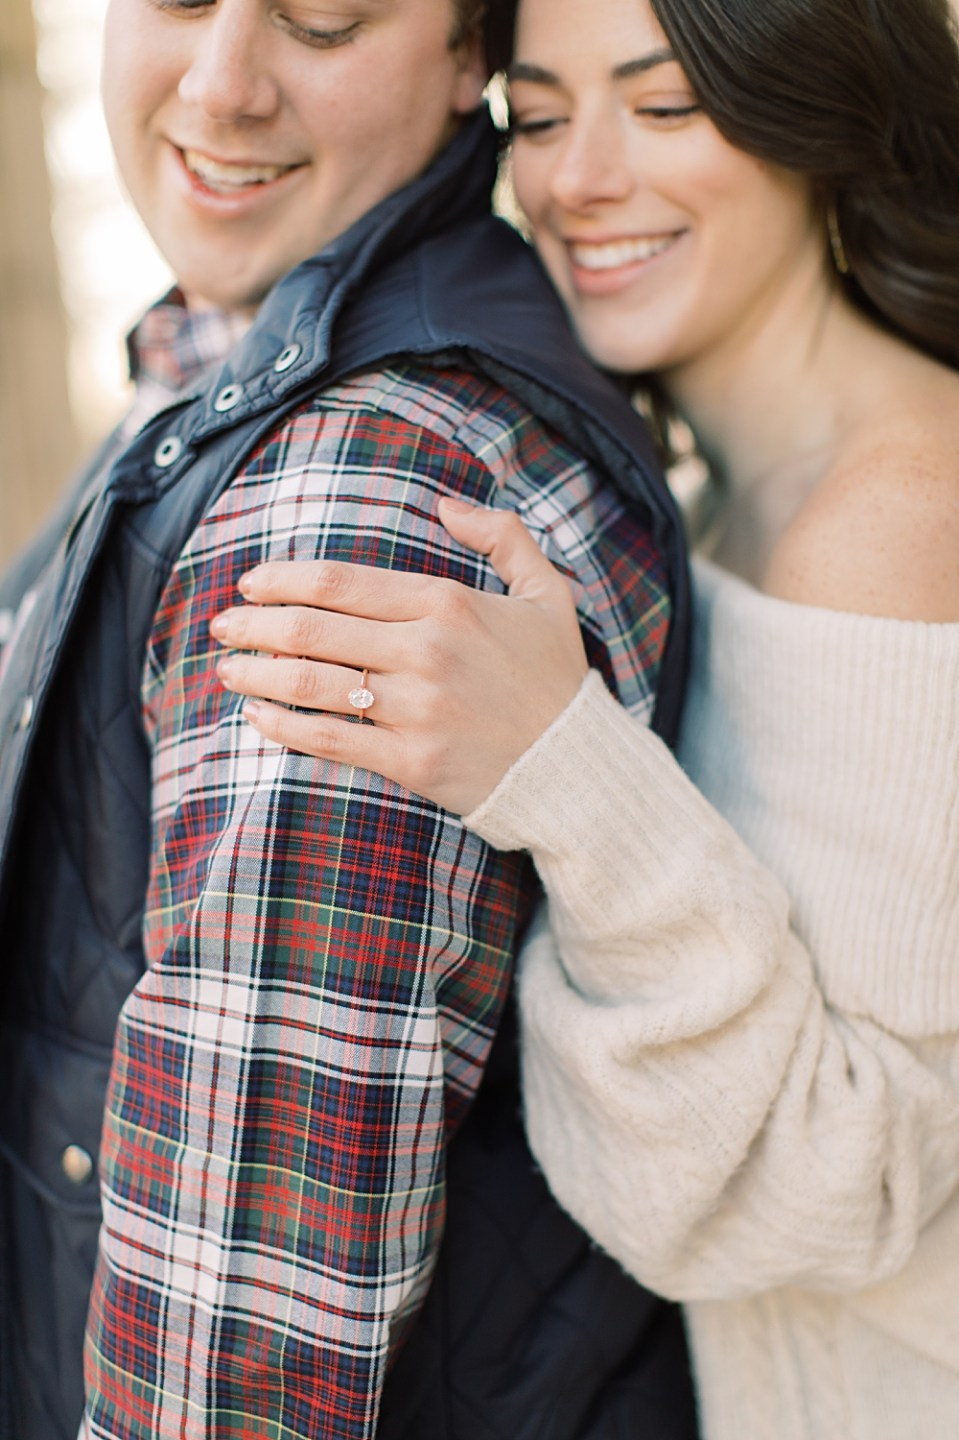 Oval cut engagement ring | Philadelphia Wedding Photographer Sarah Canning